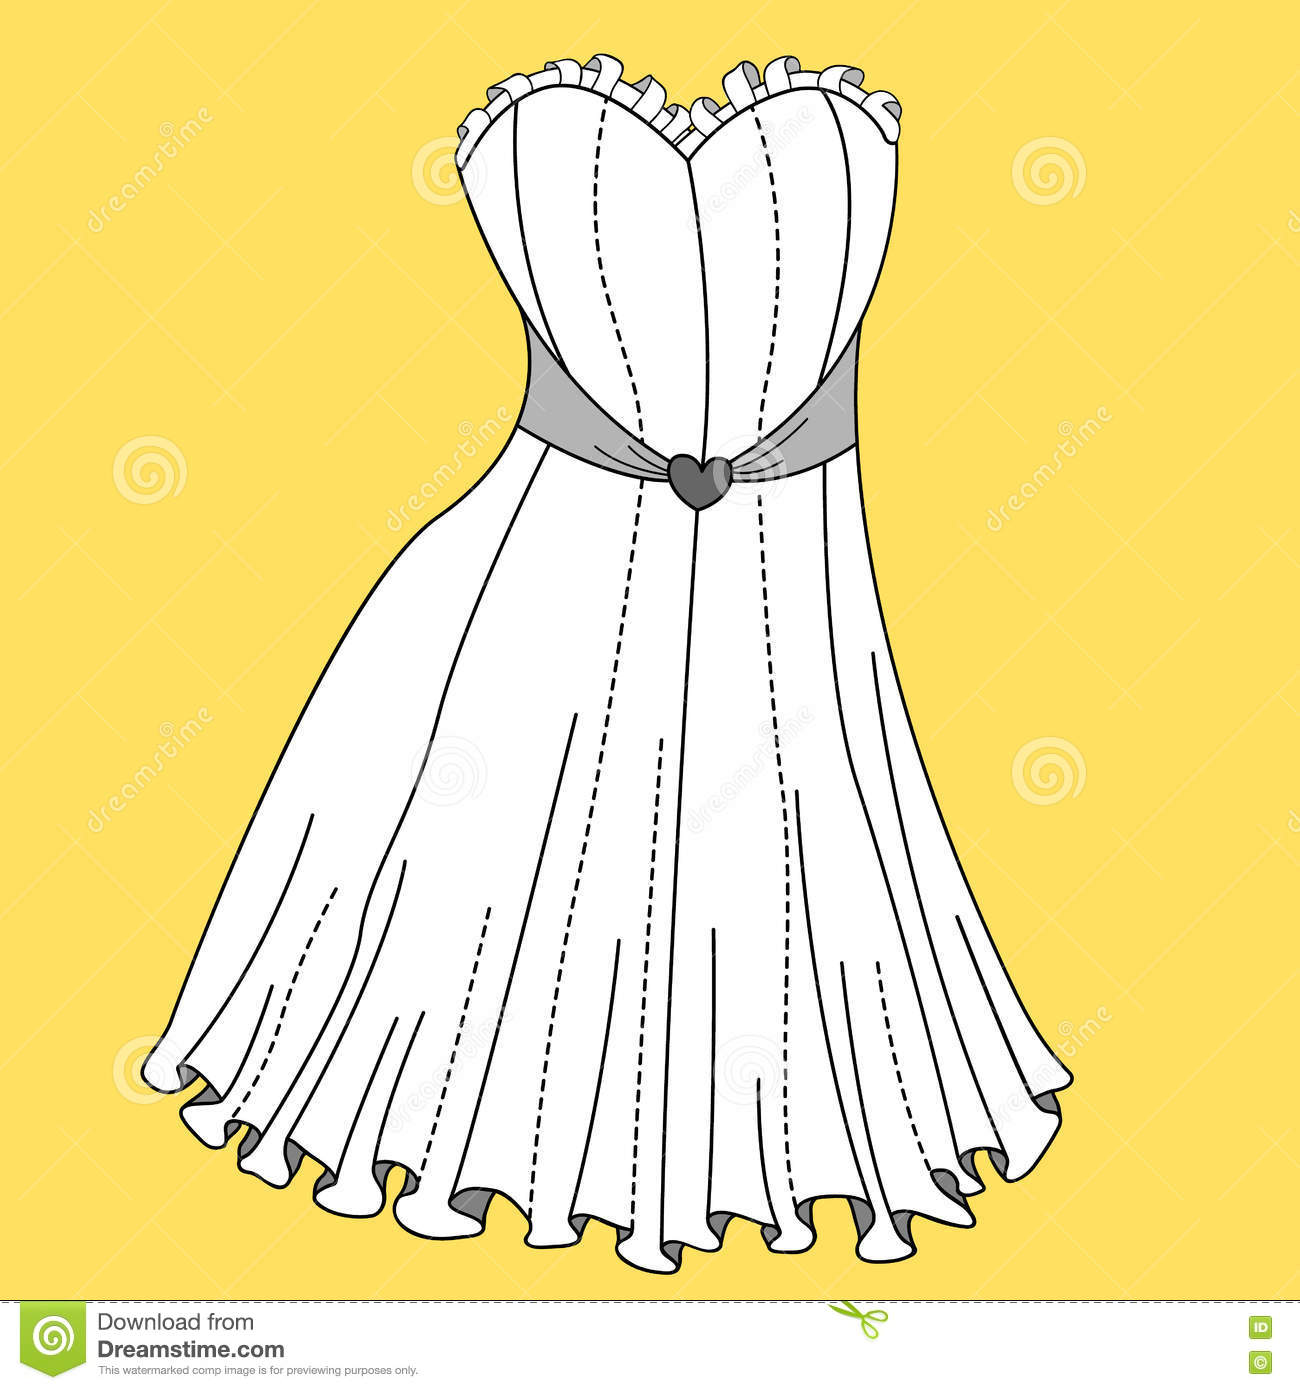 Women Dress Design Stock Vector Illustration Of Clothing 71019071